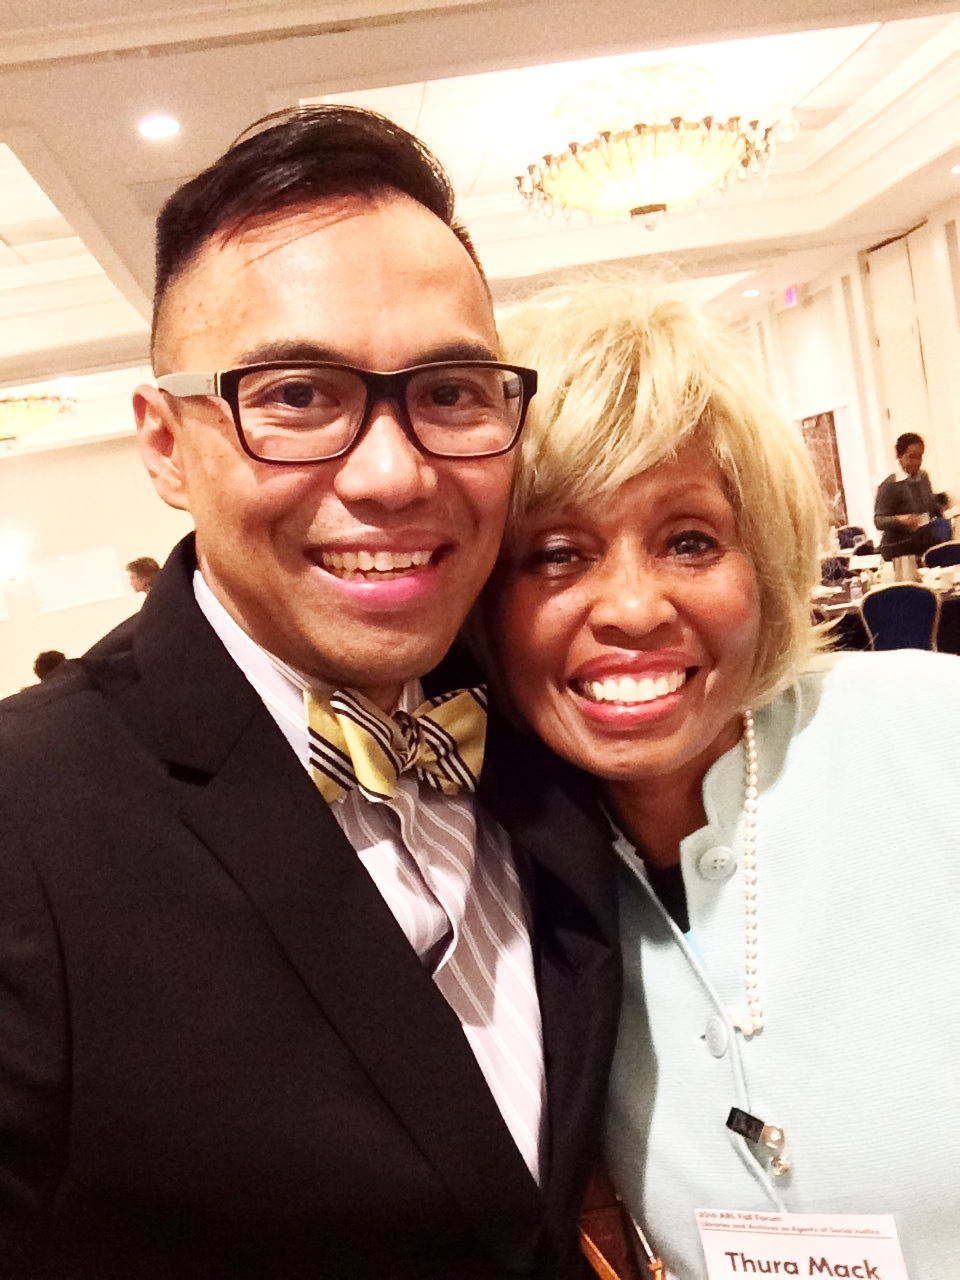 Big hugs with Thura Mack, Professor  Coordinator, Community Learning Services & Diversity Programs The University of Tennessee, Knoxville